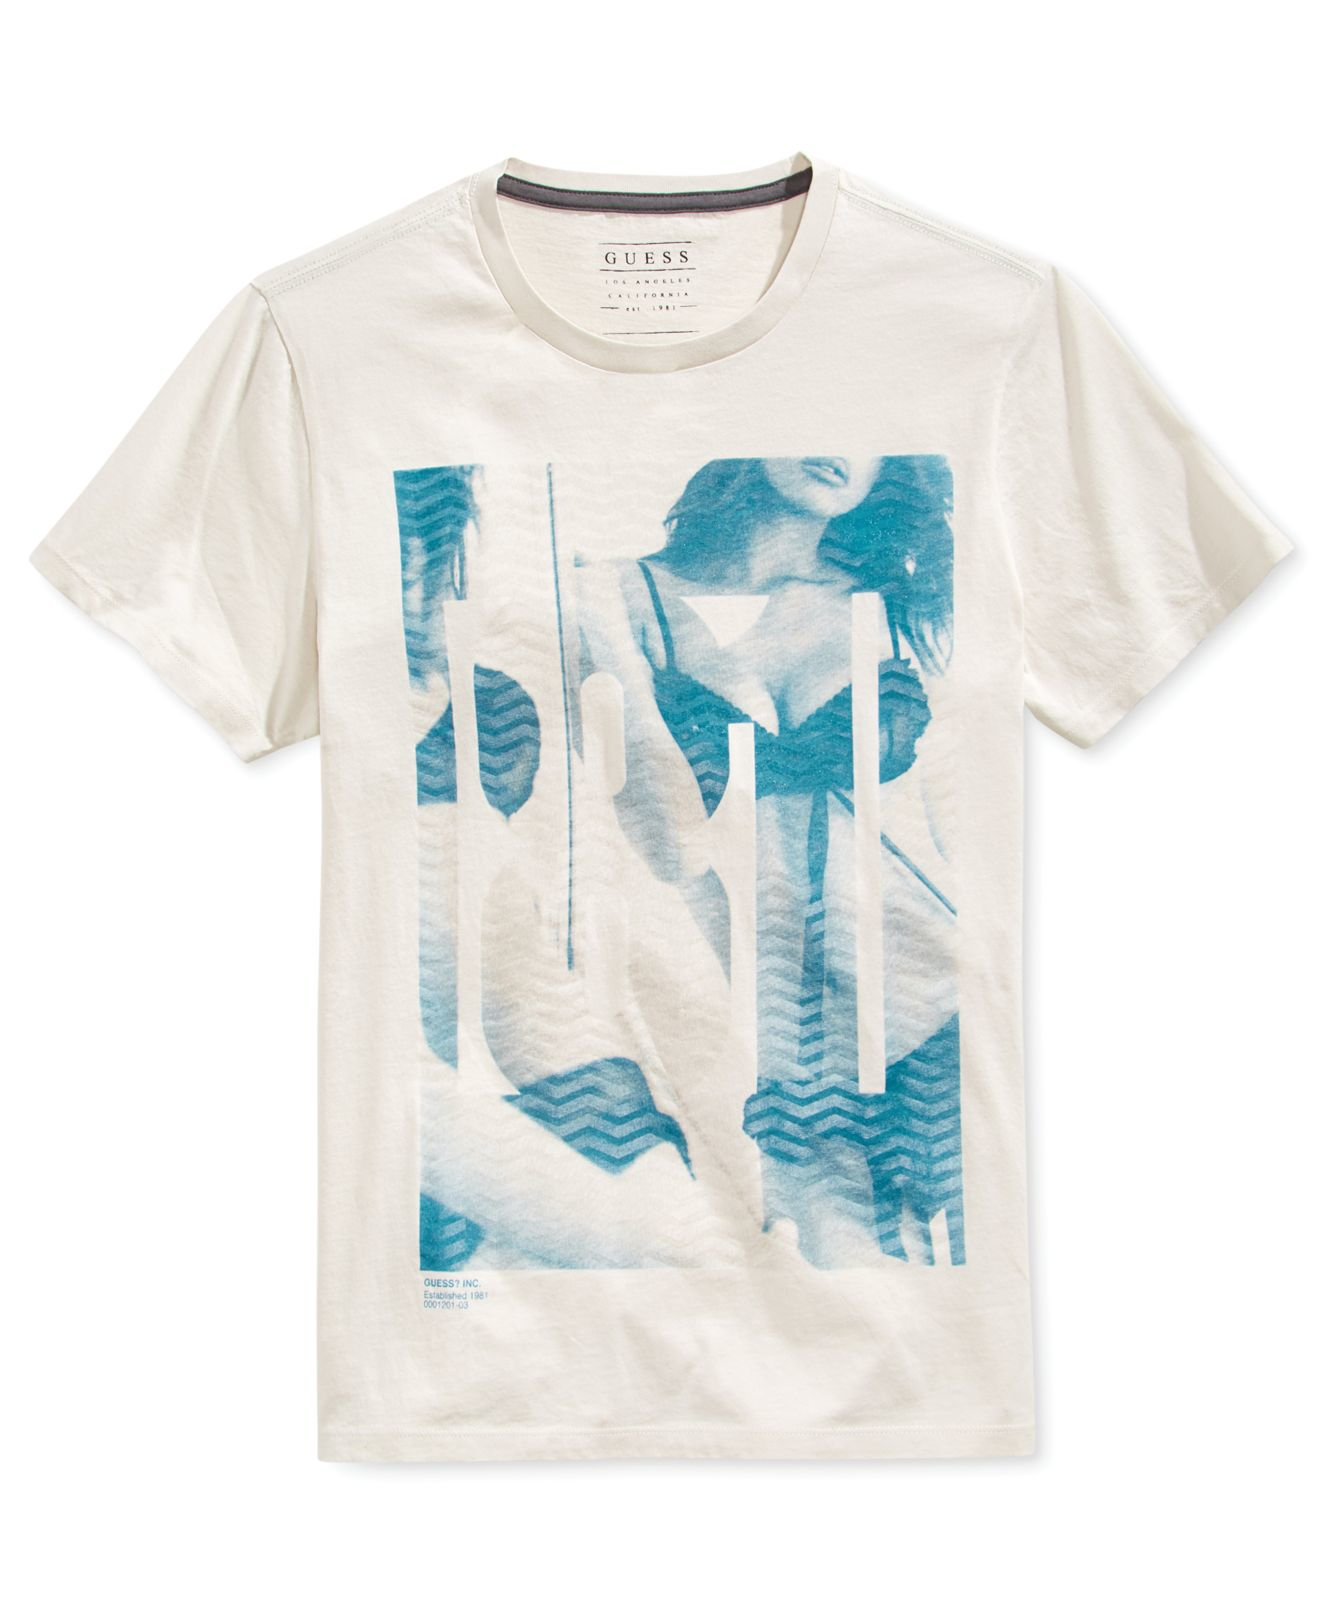 Lyst Guess Mens Eighty One Graphic Print T Shirt In Gray For Men